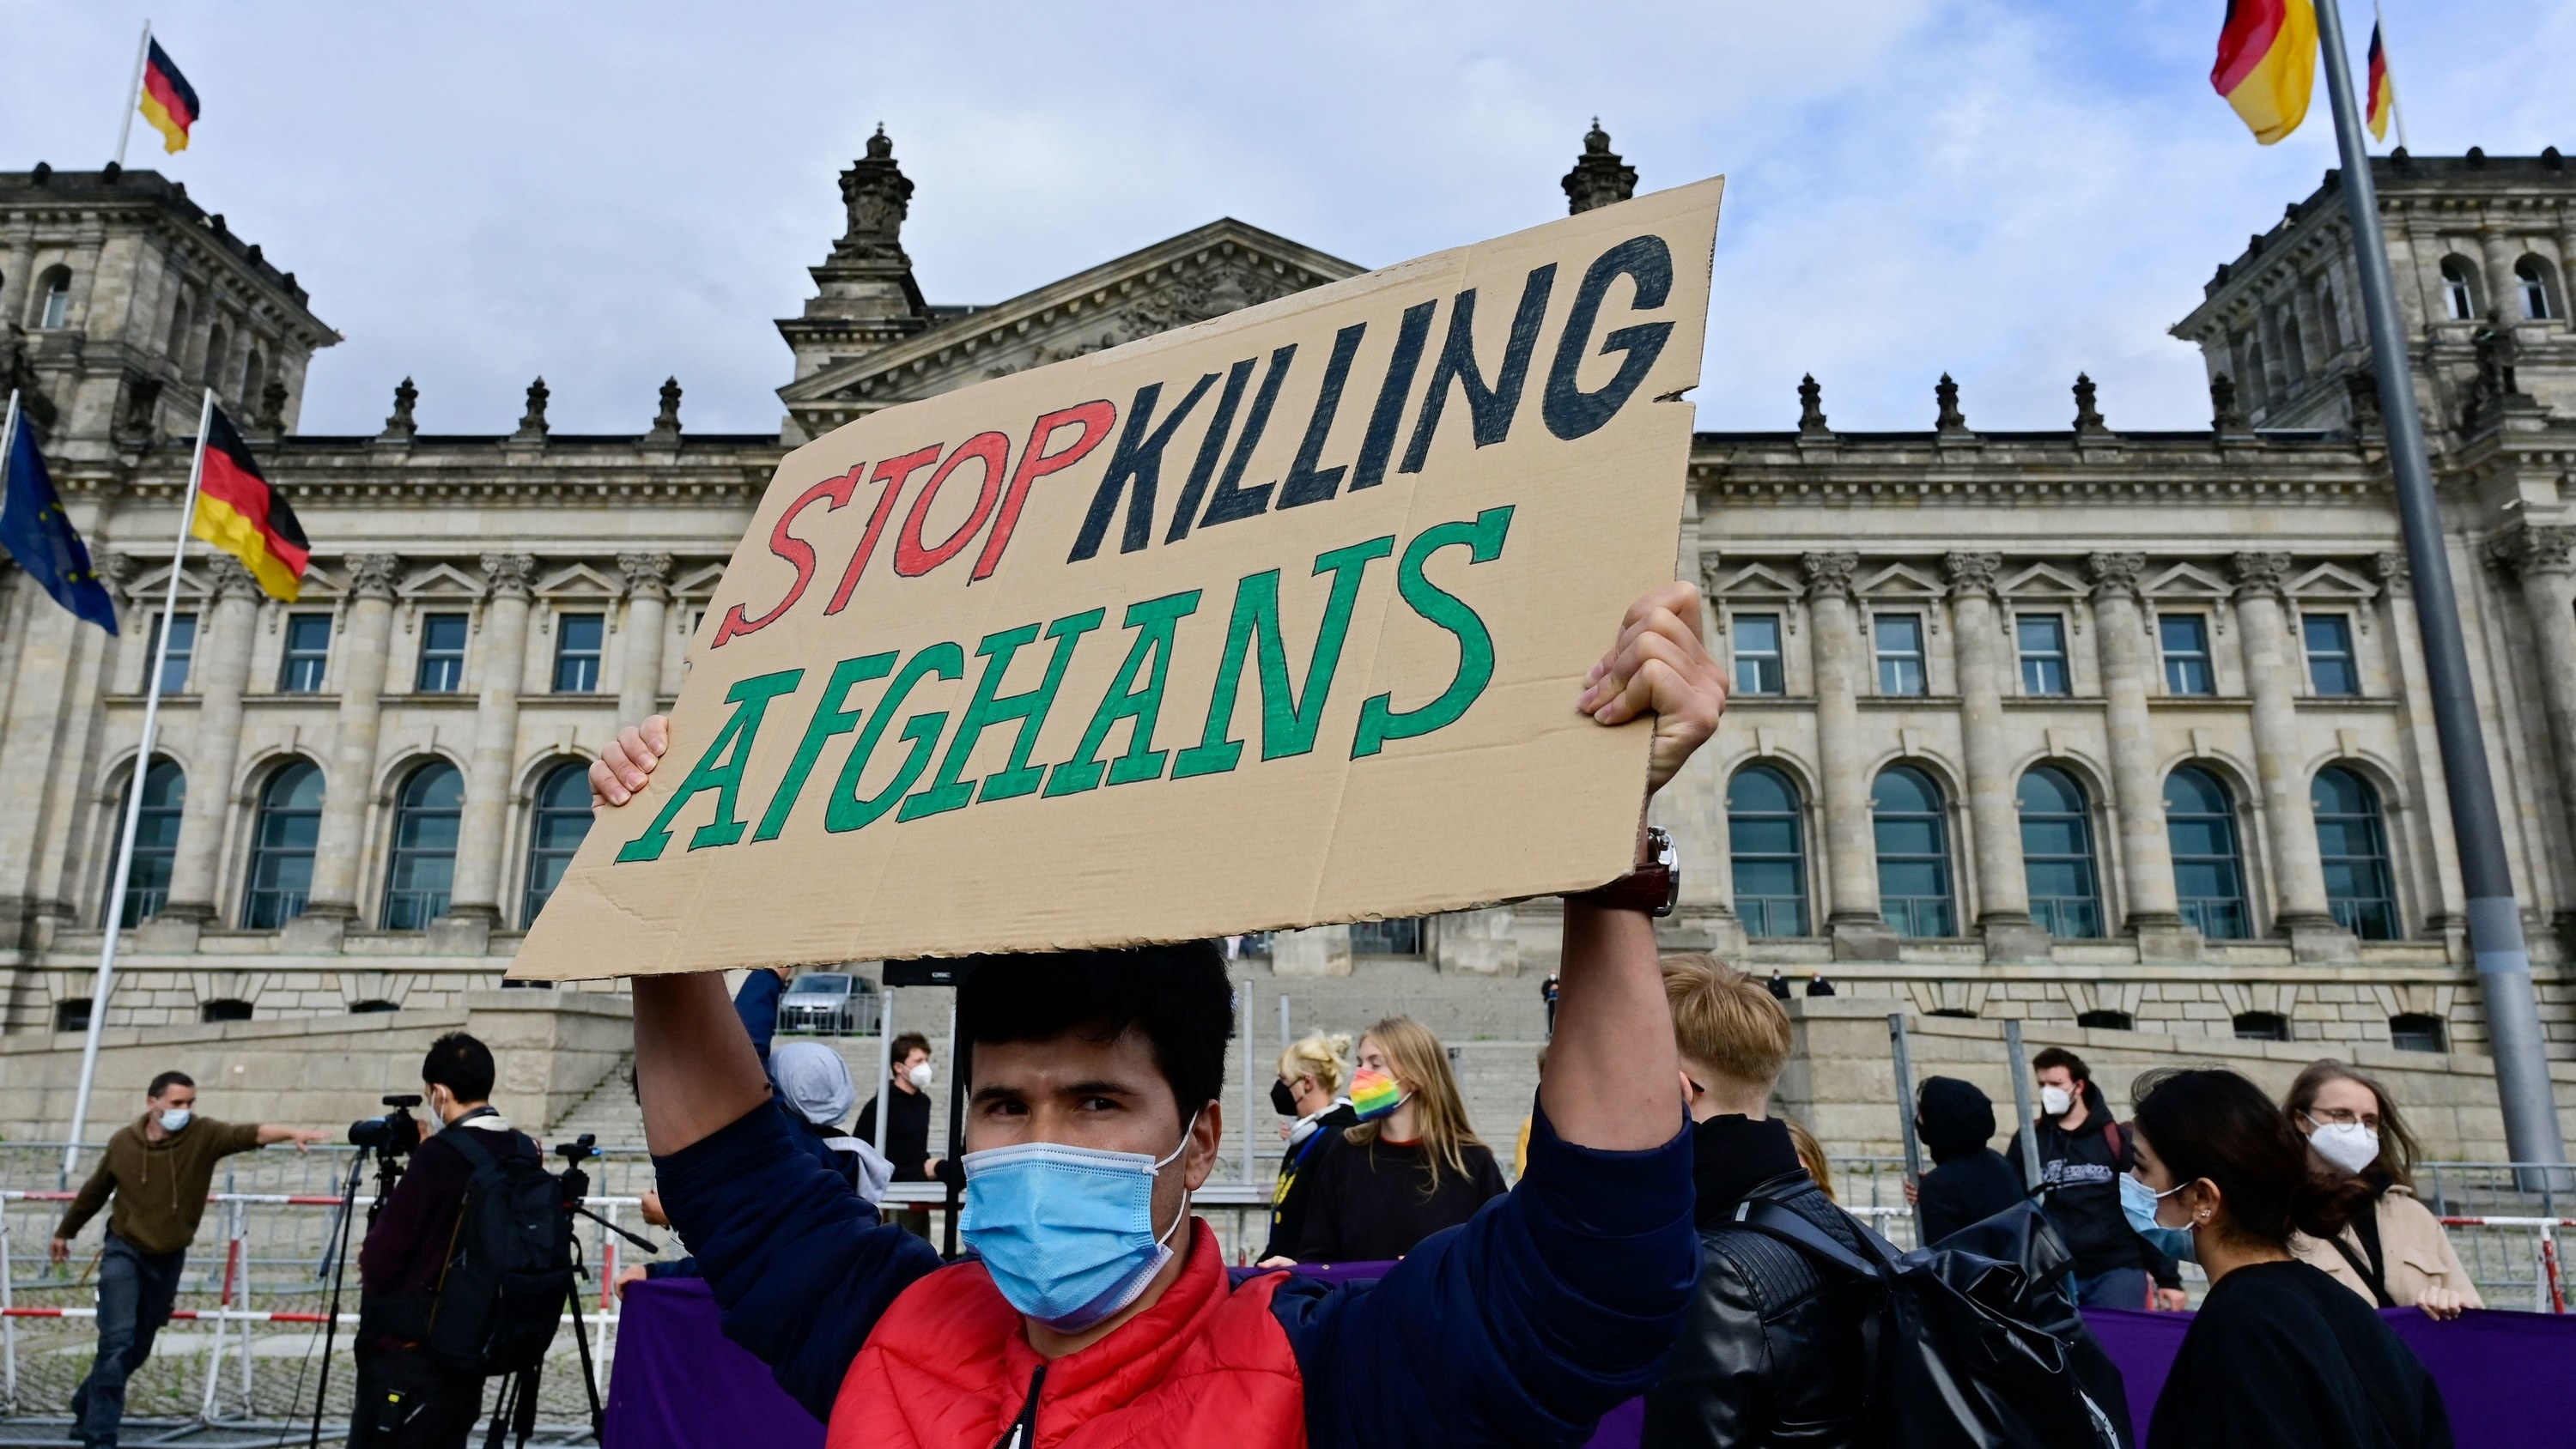 """Man holds sign reading, """"Stop killing Afghans,"""" in front of the German parliament building"""